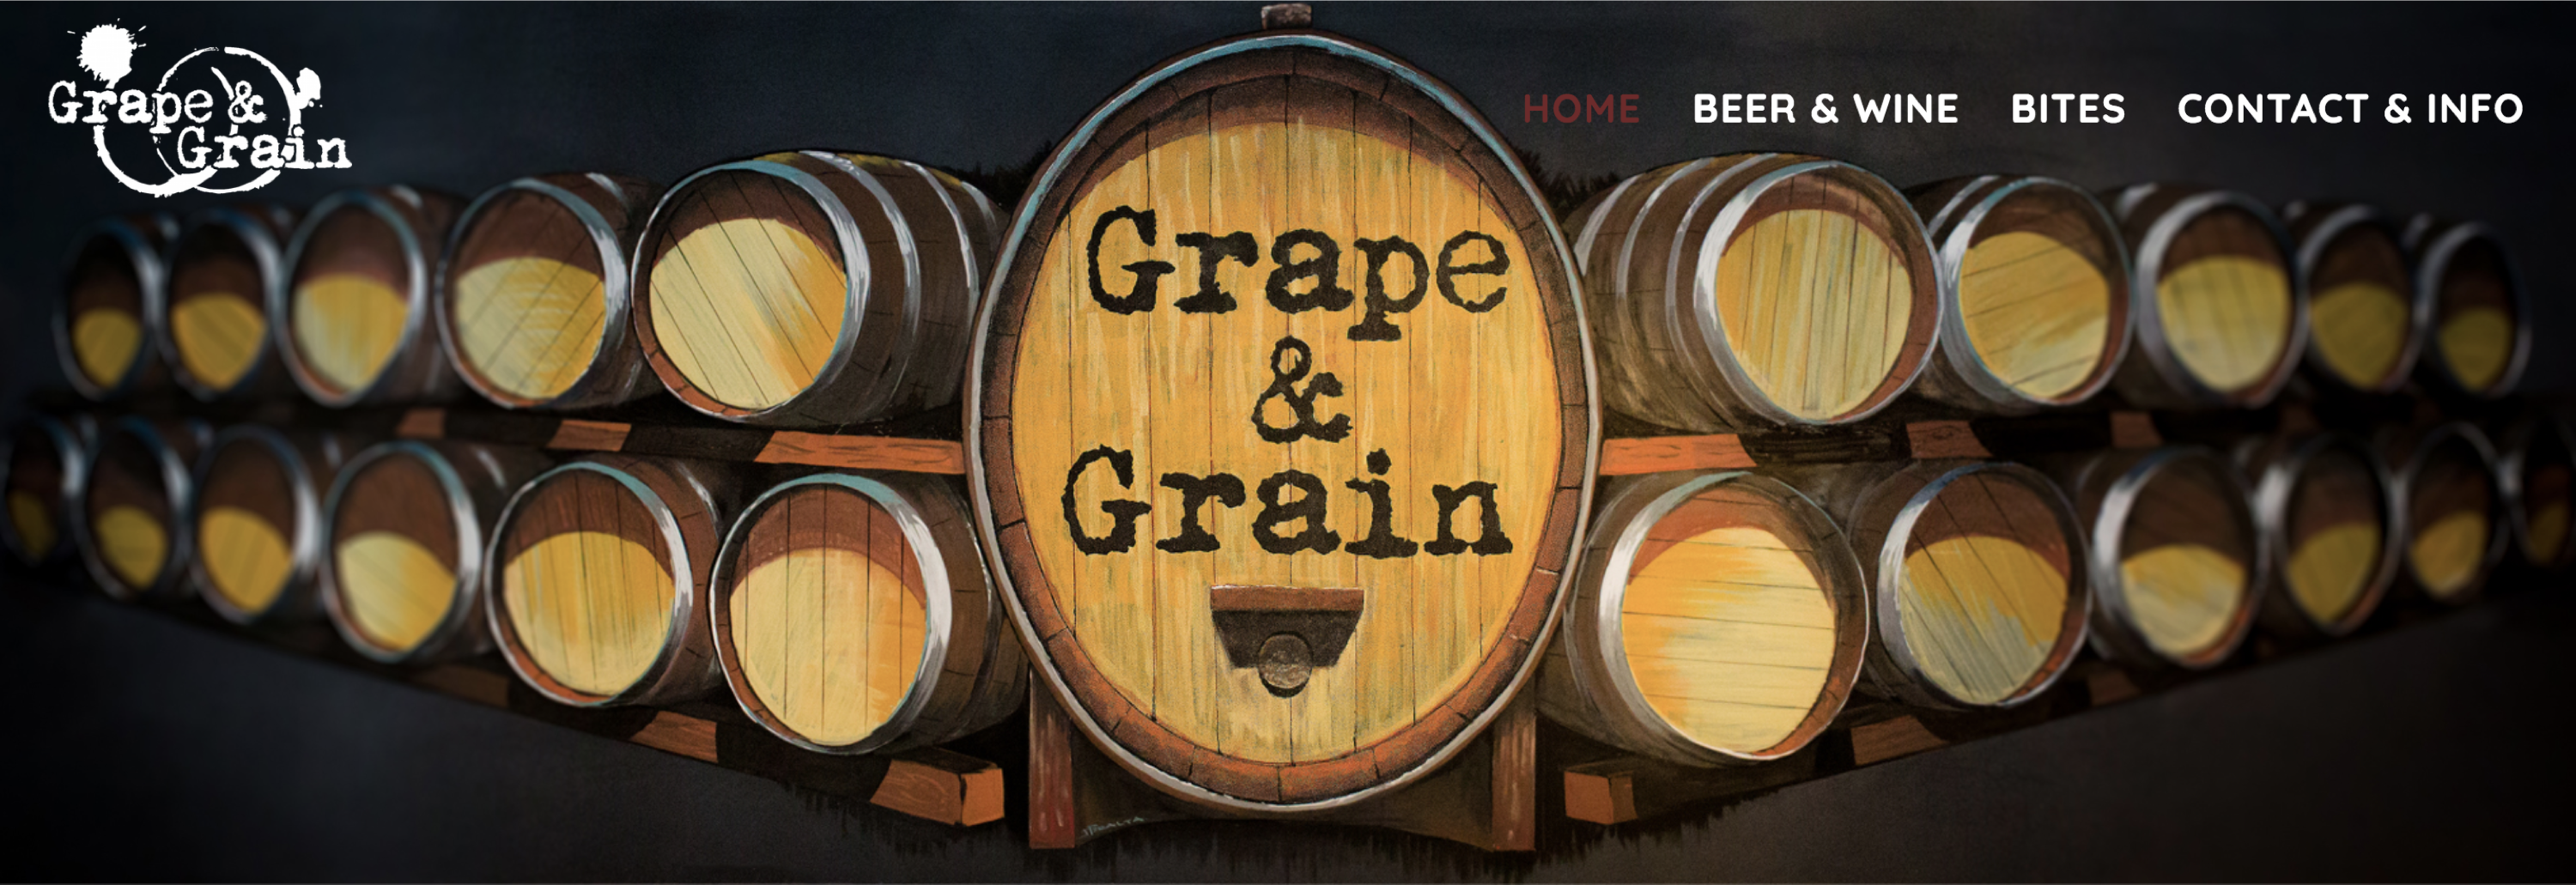 Grain & Grape